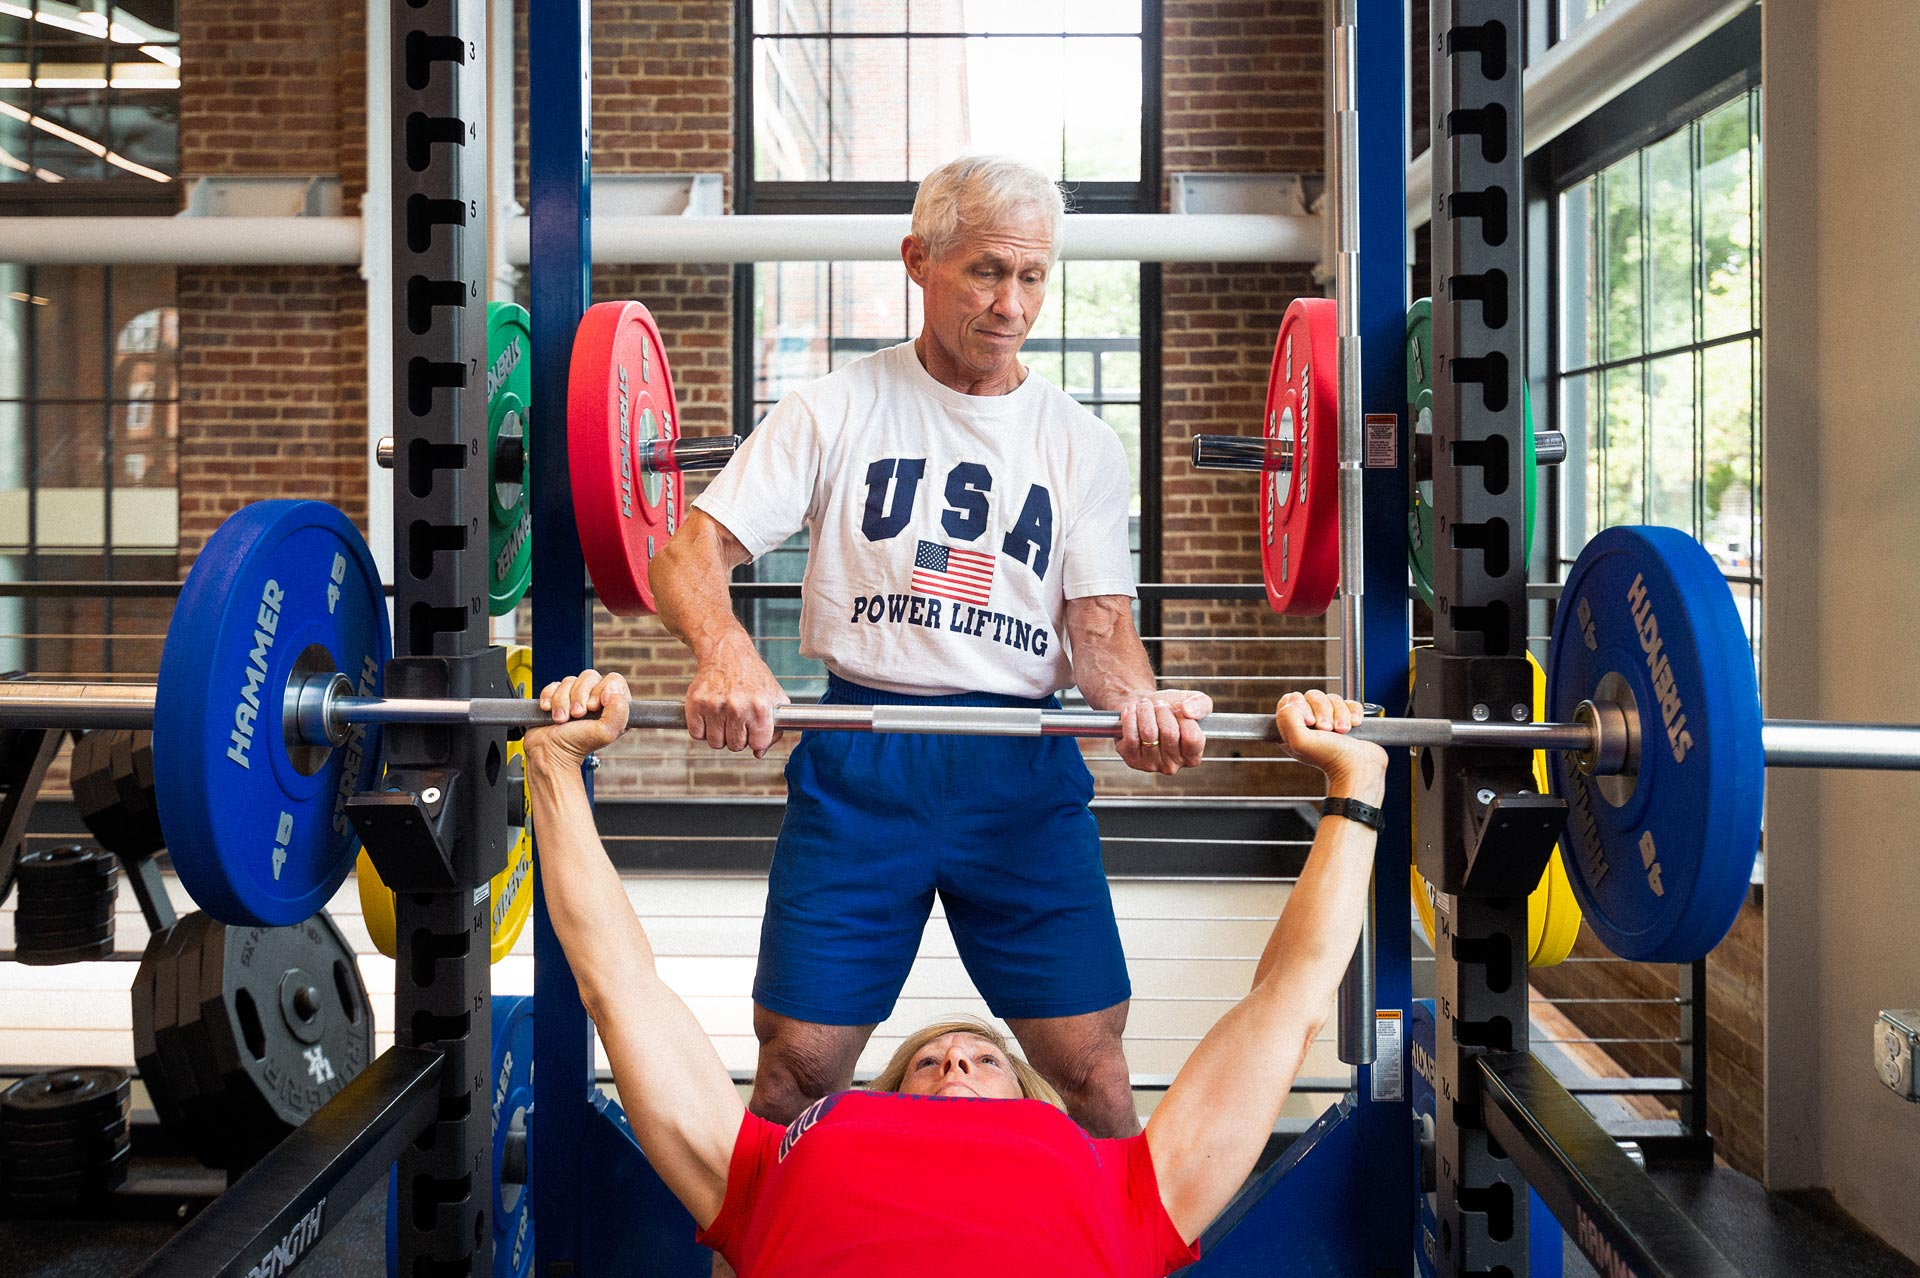 Joe and Cathy Marksteiner lifting weights together